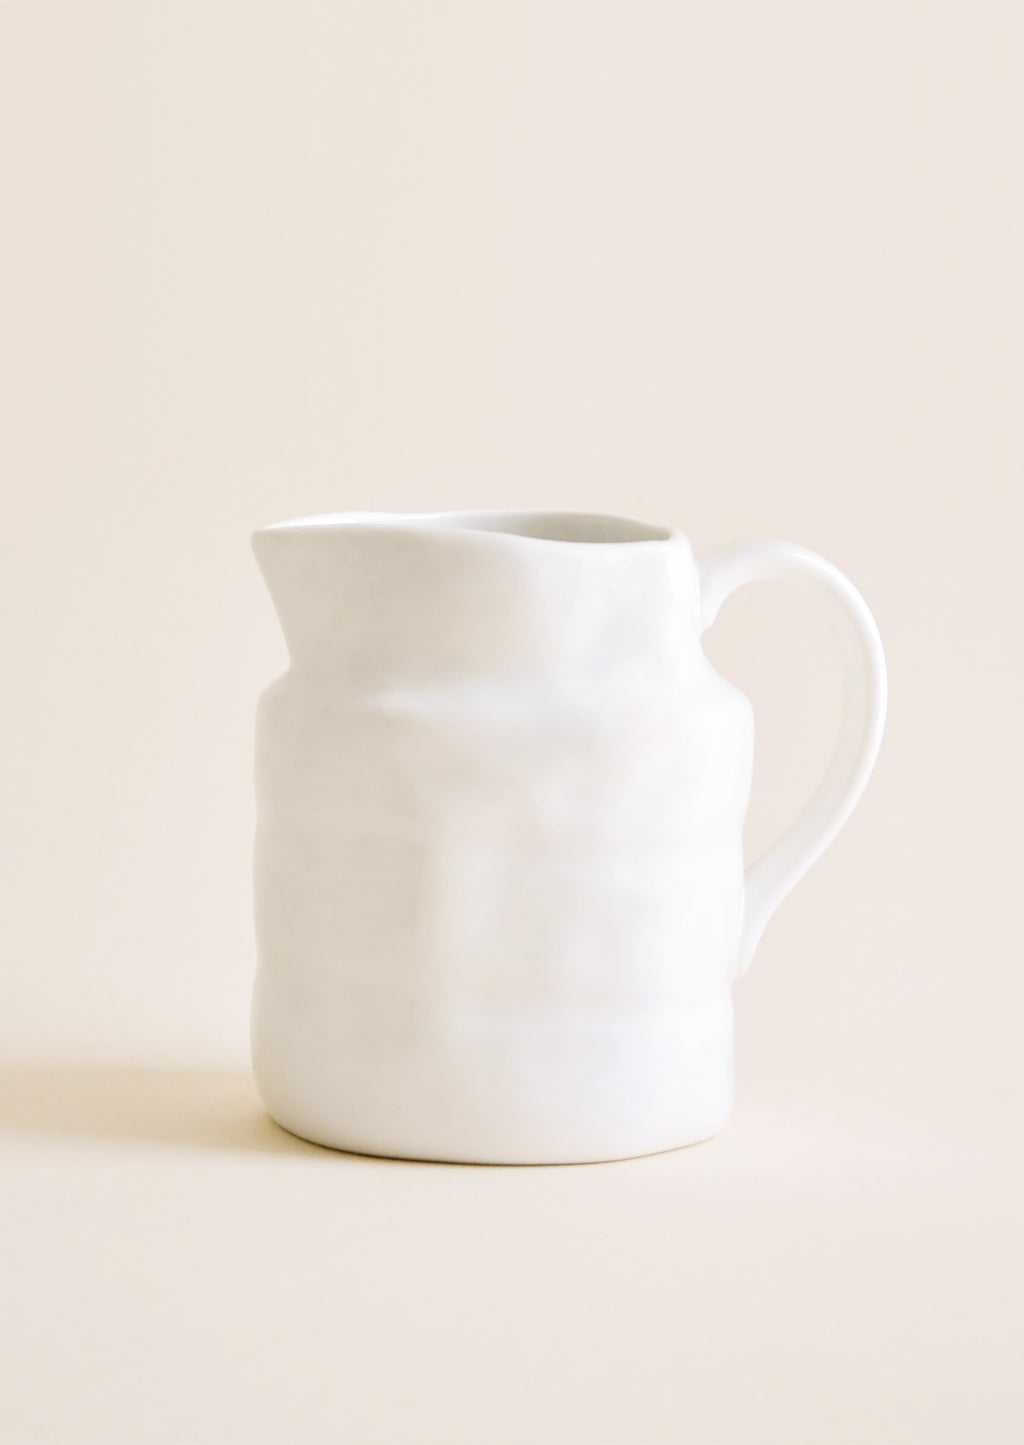 10 oz [$14.99]: Textured glossy white Ceramic Pitcher with thin delicate handle.